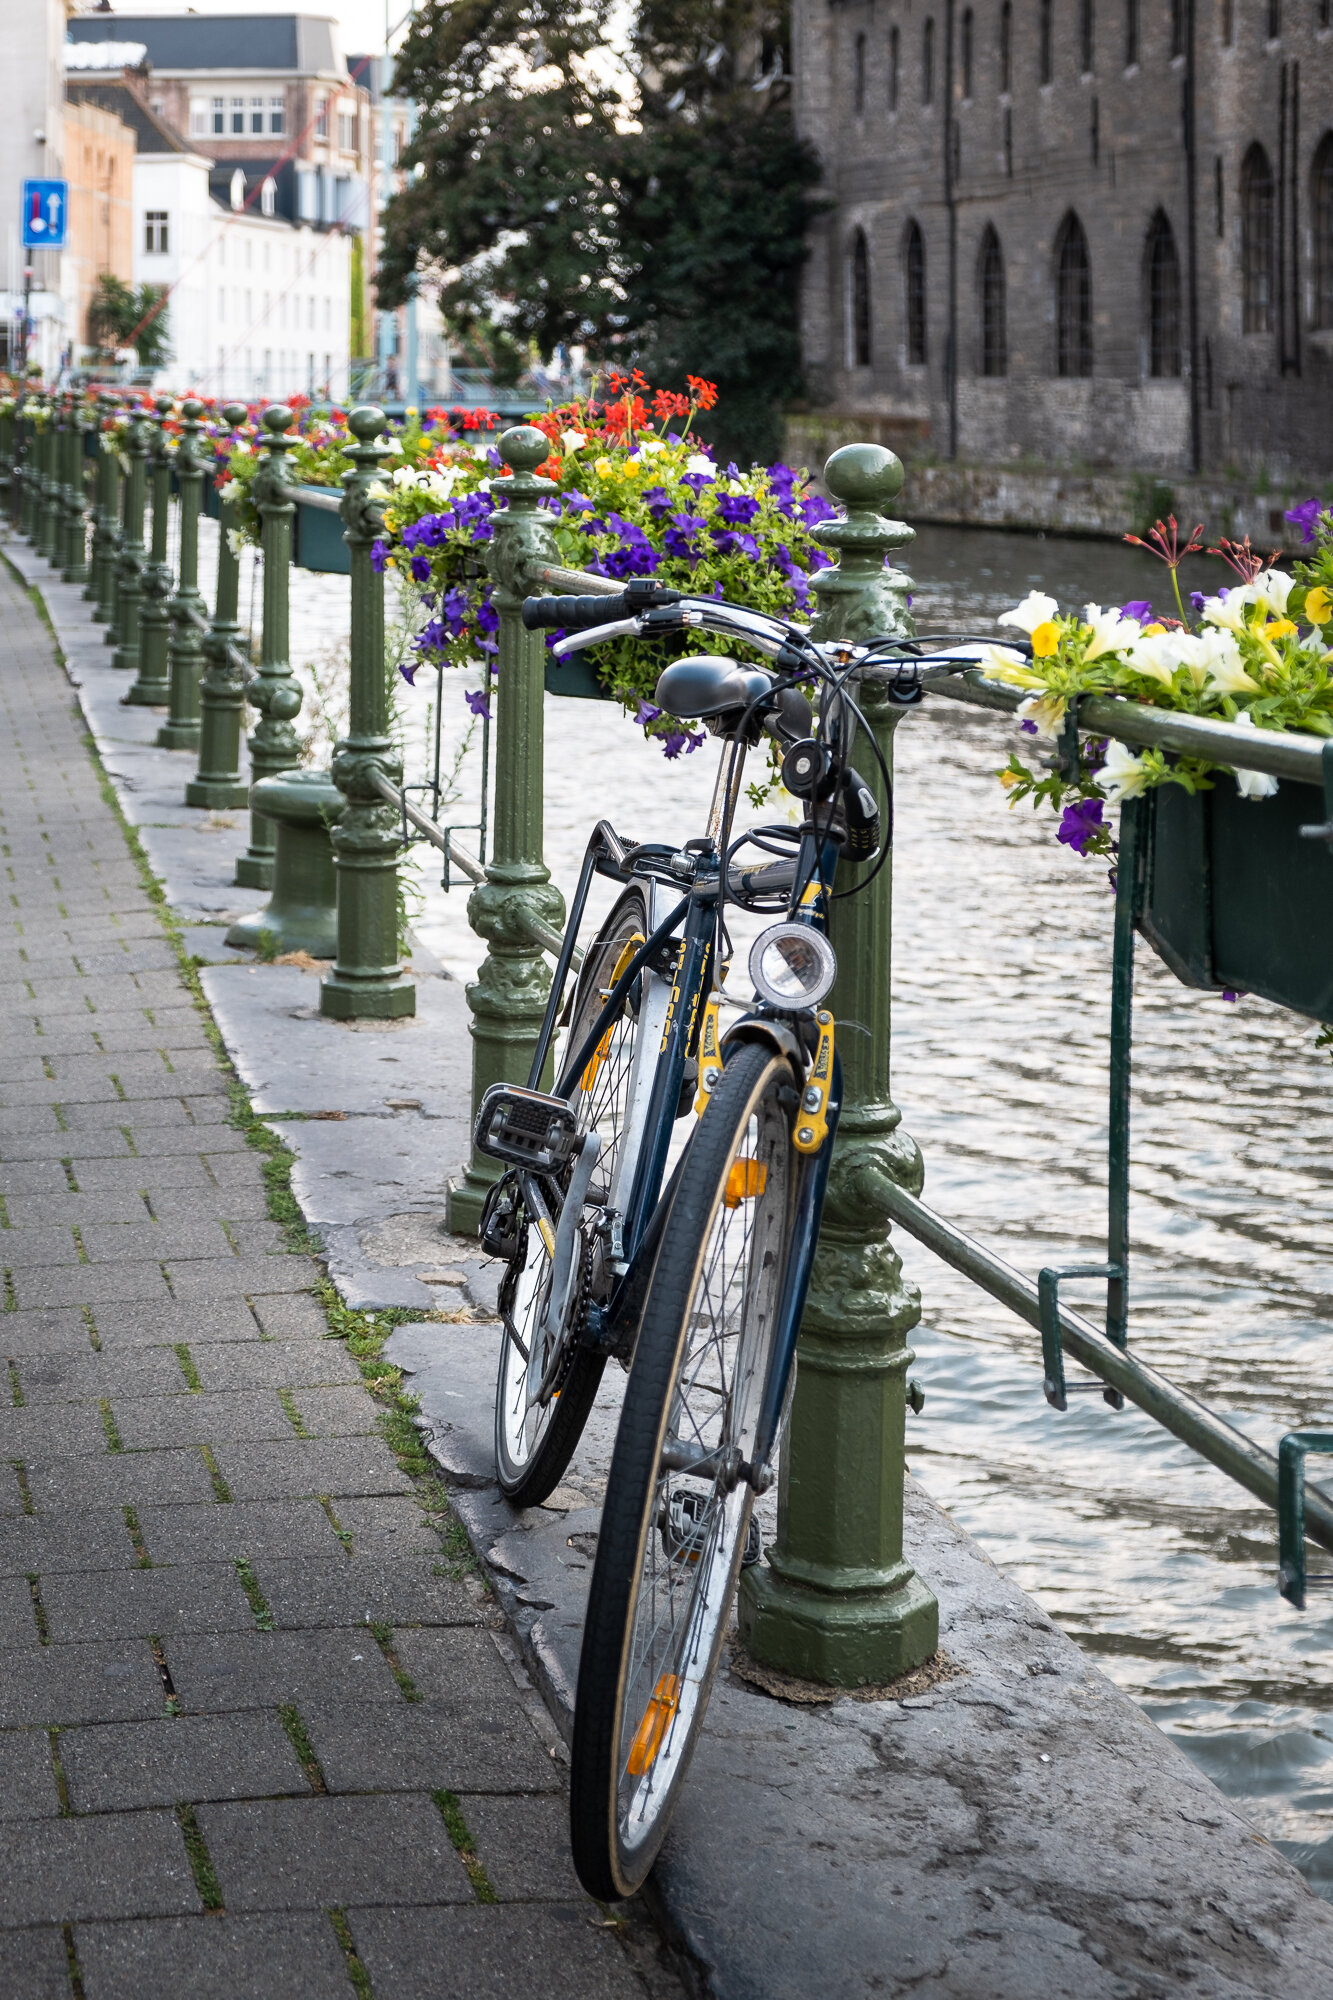 A bike on the railings in front of the River Leie